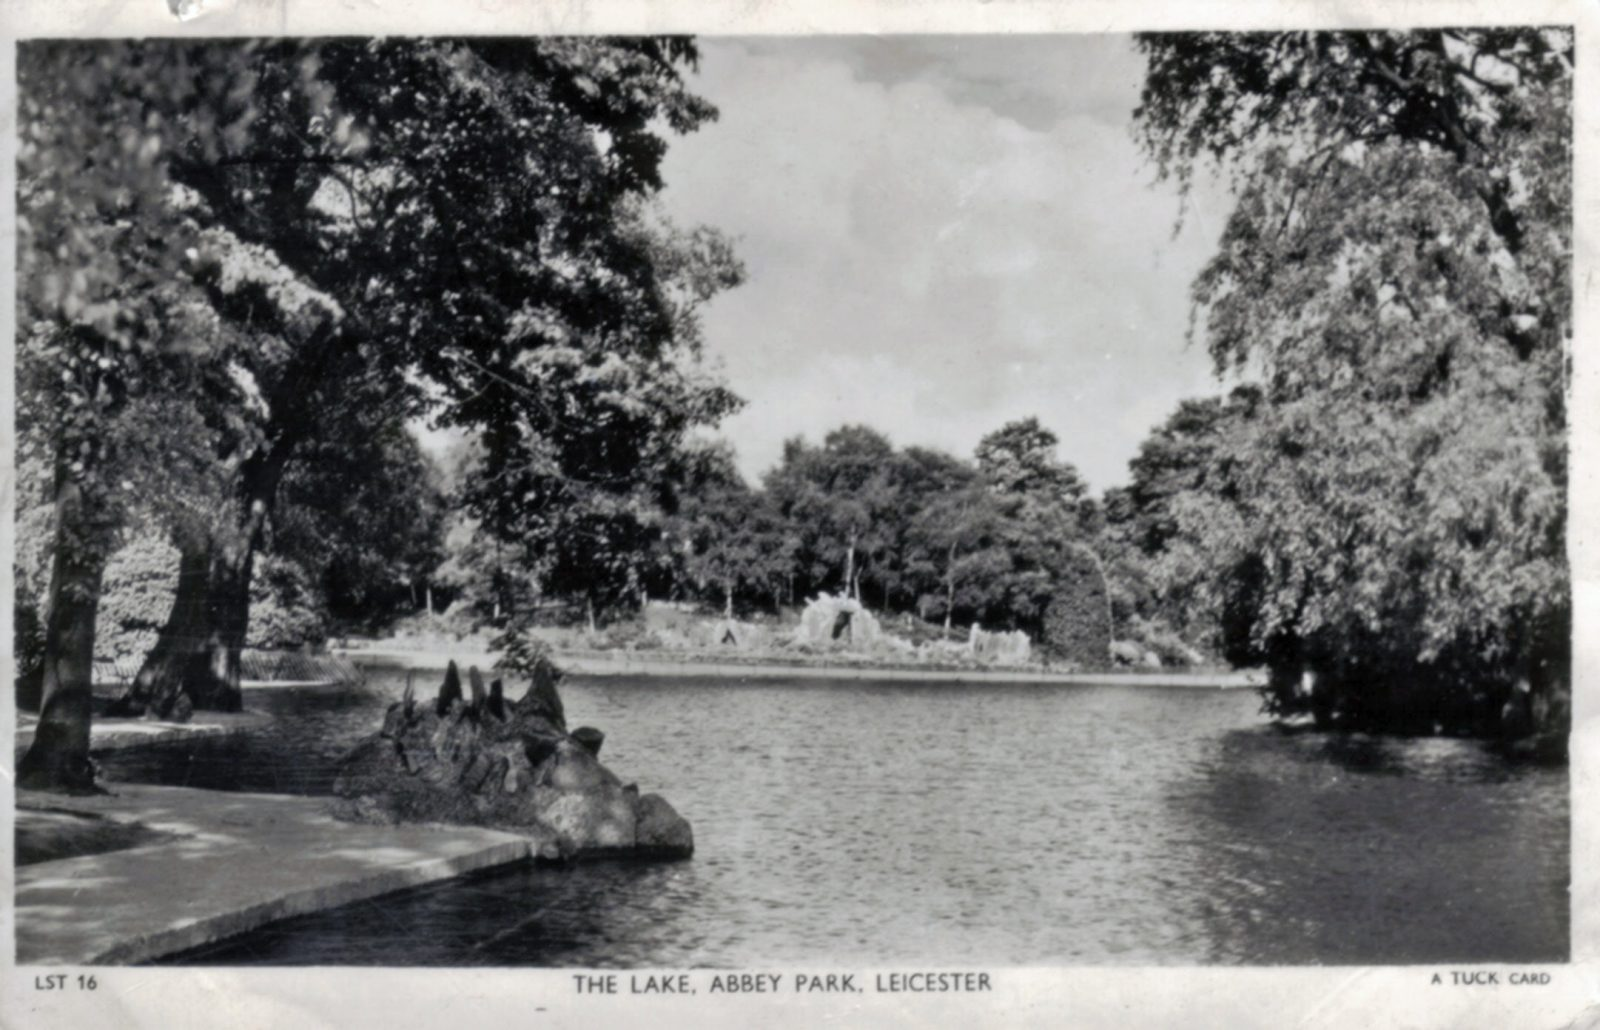 Abbey Park, Leicester. 1941-1960: The Lake. (File:1280)